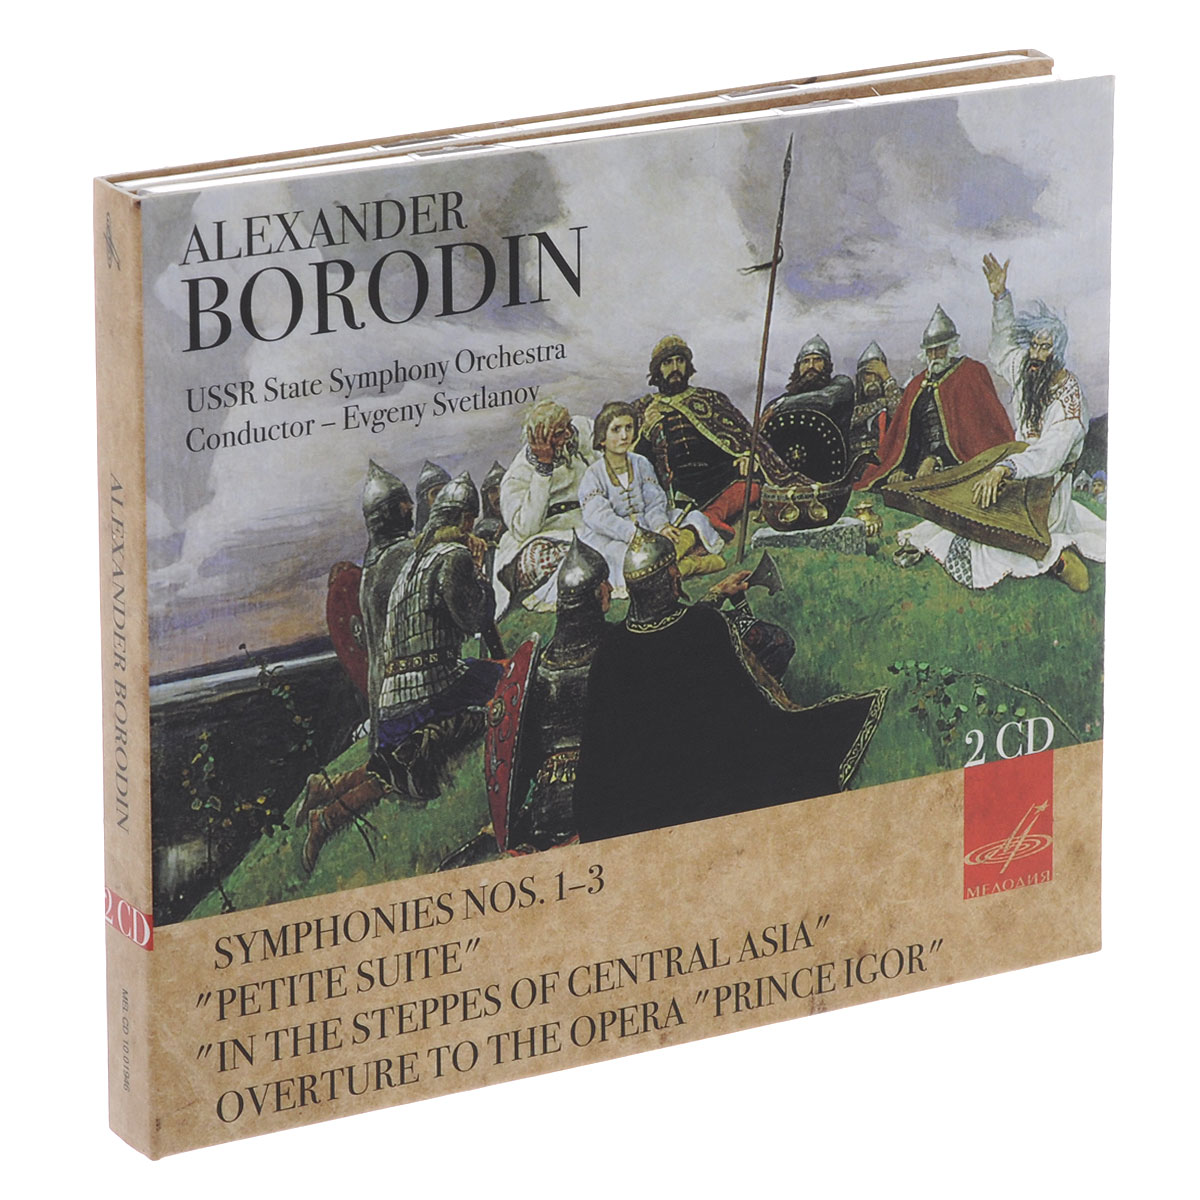 Александр Бородин Evgeny Svetlanov. Alexander Borodin. Symphonies Nos. 1-3. Petite Suite / In The Steppes Of Central Asia / Overture To The Opera Prince Igor (2 CD)